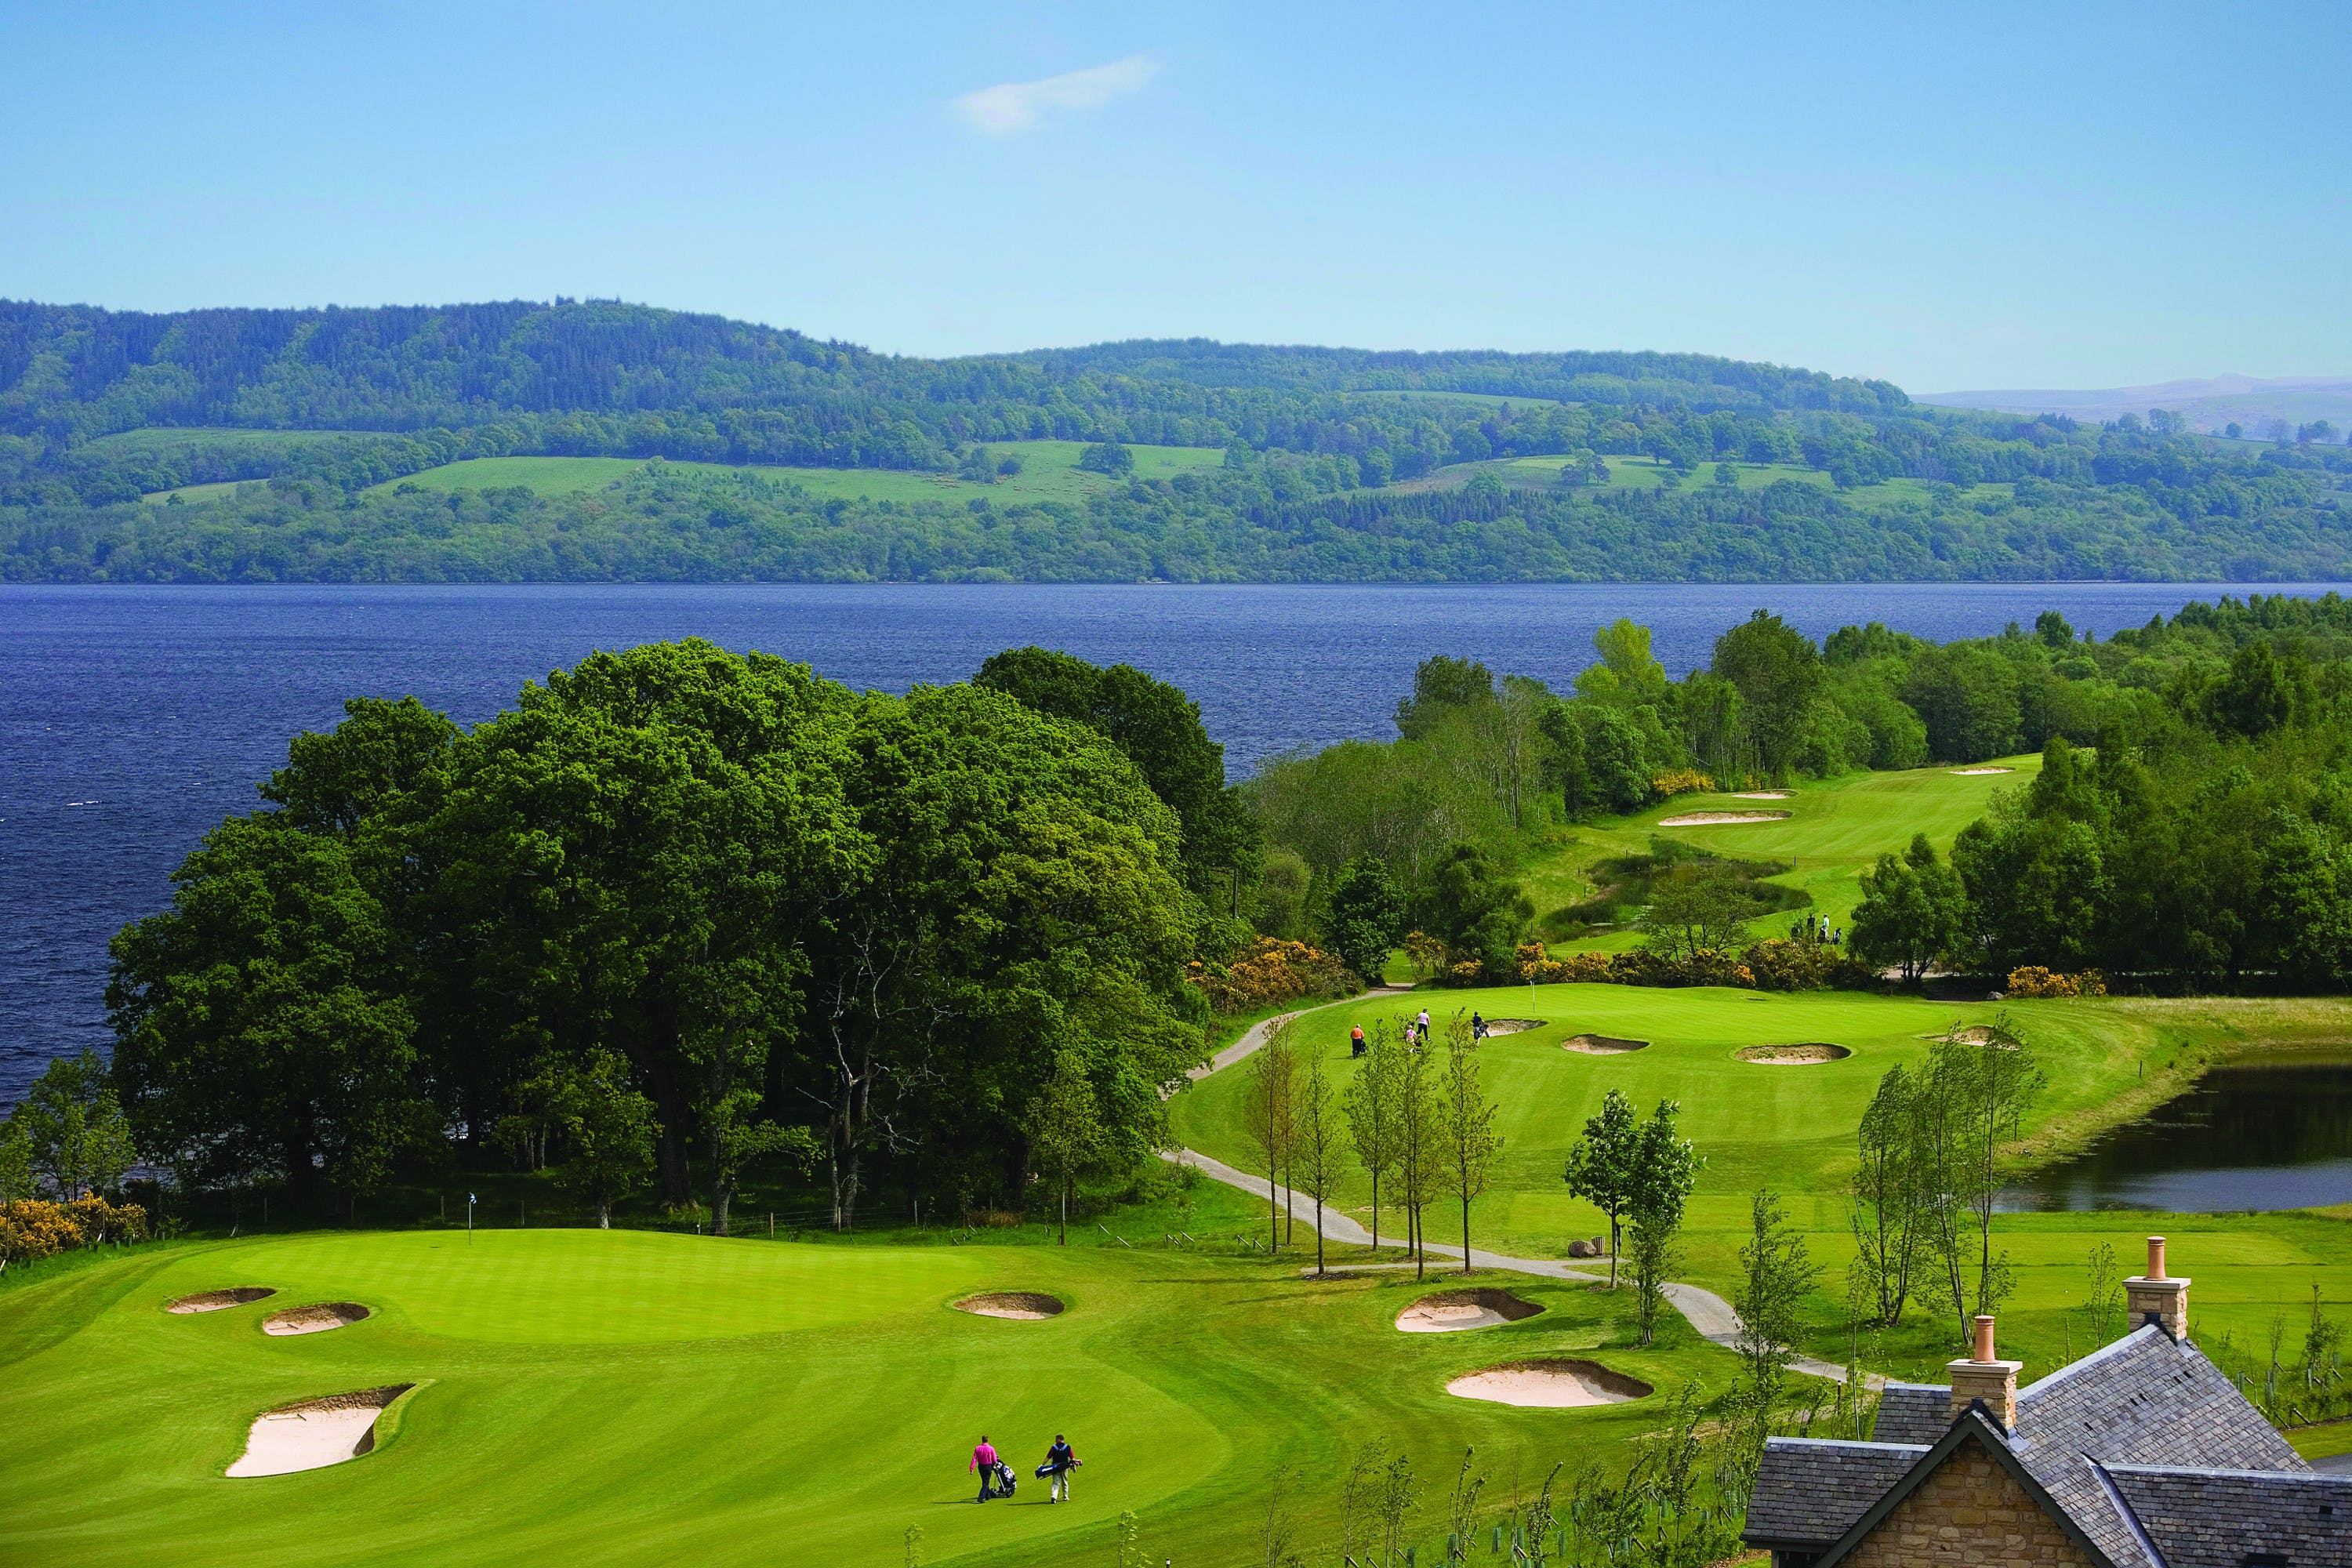 The Carrick Golf Course & Loch Lomond